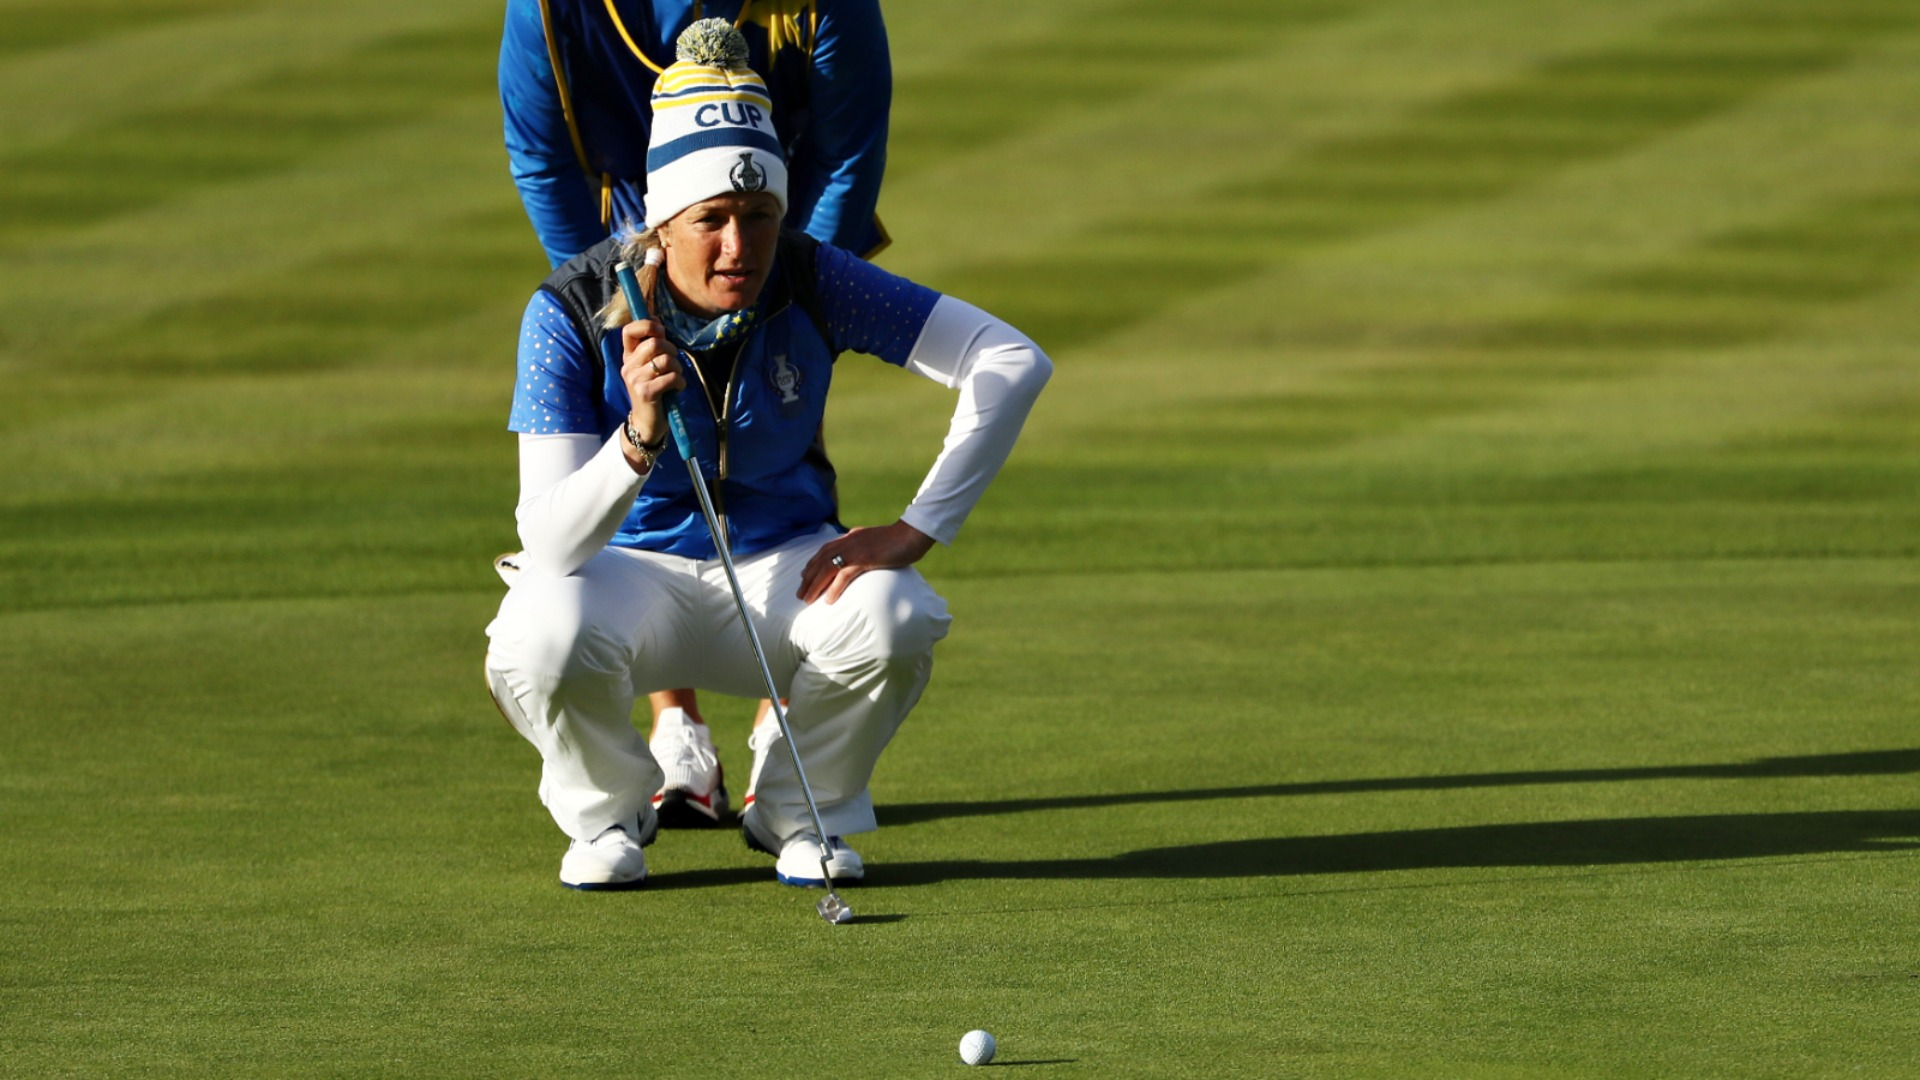 Pettersen and Europe stun USA with last-gasp Solheim Cup fightback